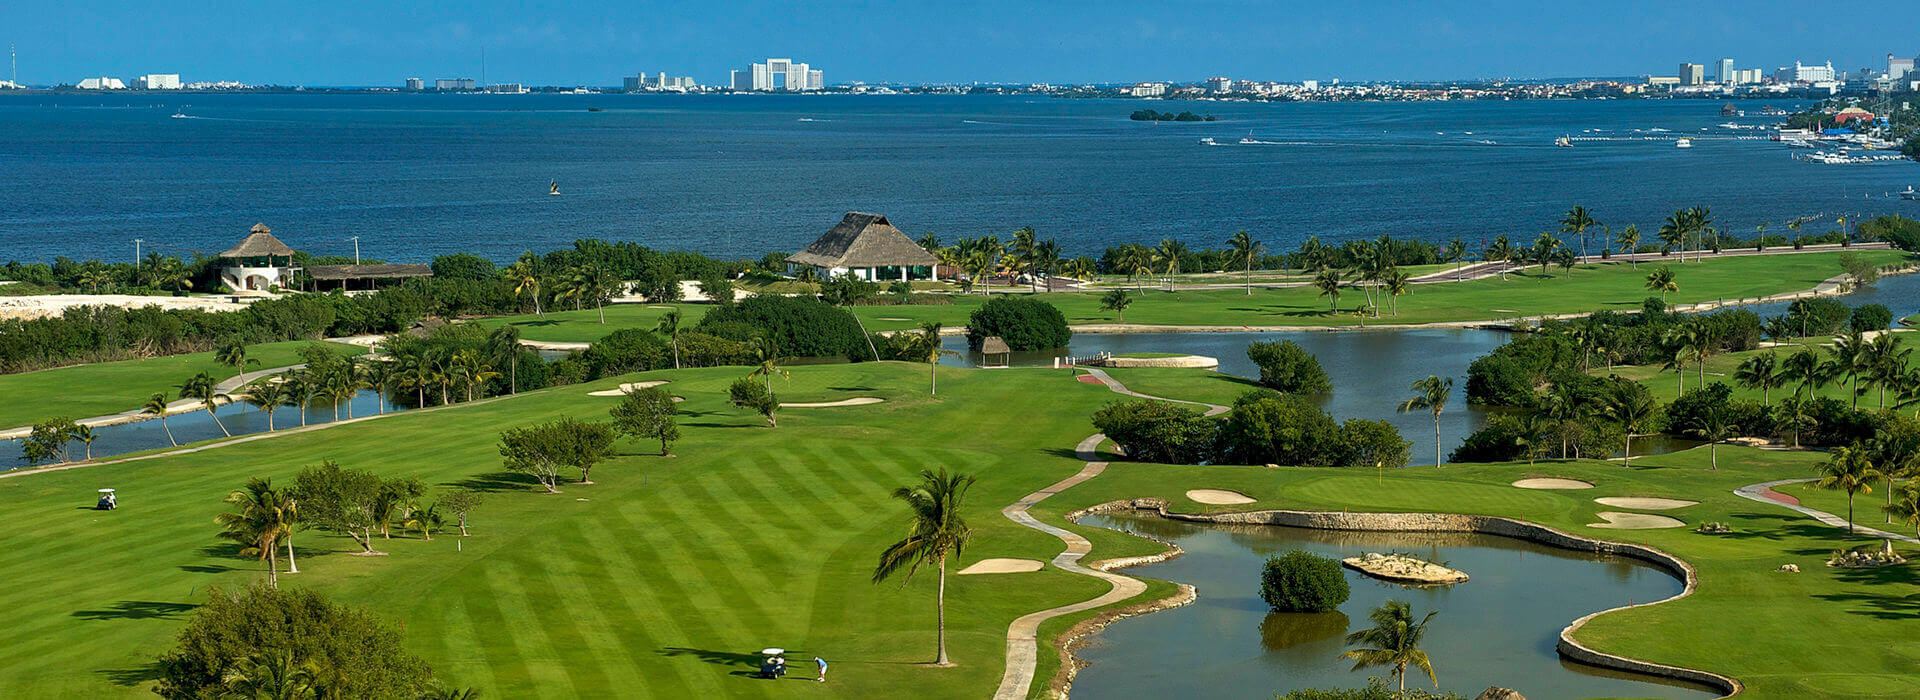 beautiful golf settings with water inlets